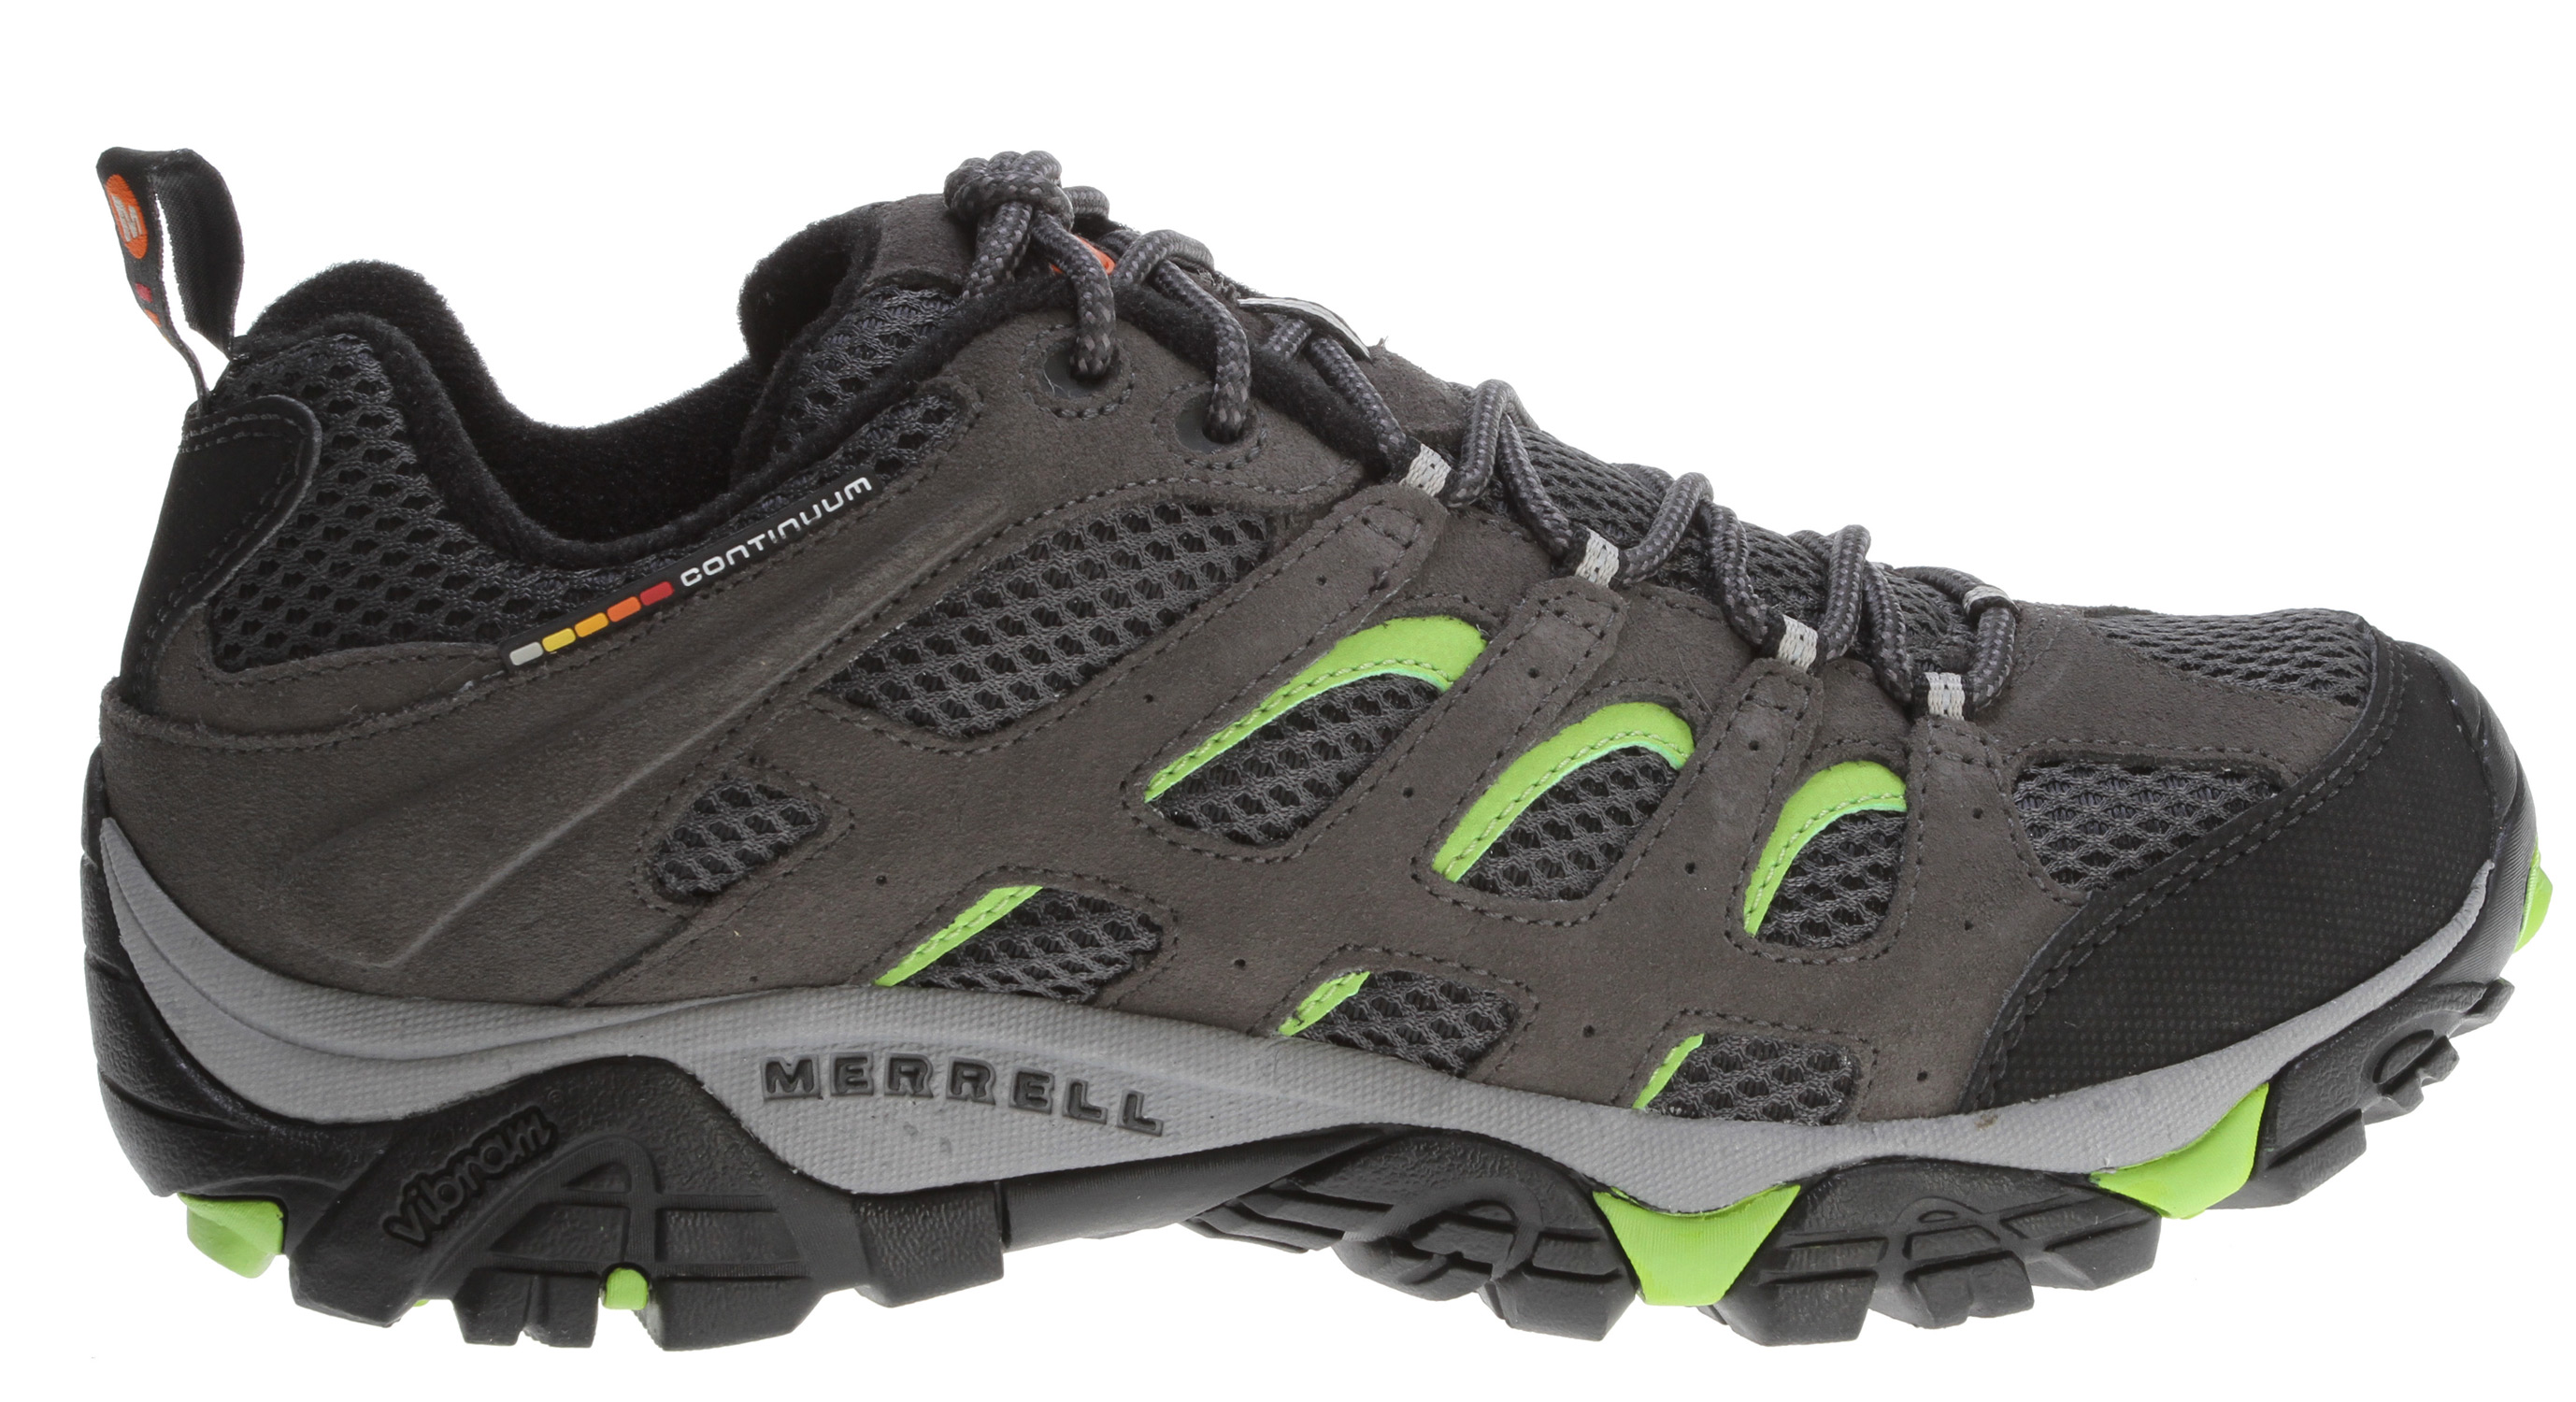 Camp and Hike Our endless summer essential hiking shoe now with highly evolved breathability for hiking or biking the trails. A lattice-like overlay of Dura leather strapping supports and protects while enhancing the open-window venting of the breathable mesh upper that is a Merrell mark. Full bumper protection at the toe and around the heel Proven Vibram Multi-Sport sole with TC5+ rubber compound for grip and durability.Key Features of the Merrell Moab Ventilator Hiking Shoes: Dura leather and mesh upper Bellows tongue keeps debris out Synthetic leather toe cap and heel counter Breathable mesh lining treated with Aegis® Antimicrobial solution maintains foot comfort Ortholite® Anatomical Footbed Molded nylon arch shank Compression molded EVA footframe provides cushioning Merrell® Air Cushion in the heel absorbs shock and adds stability 5mm Sole lug depth Vibram® Multi-Sport Sole/TC5+ Rubber Weight: 1 lb 8 ozs. - $58.95